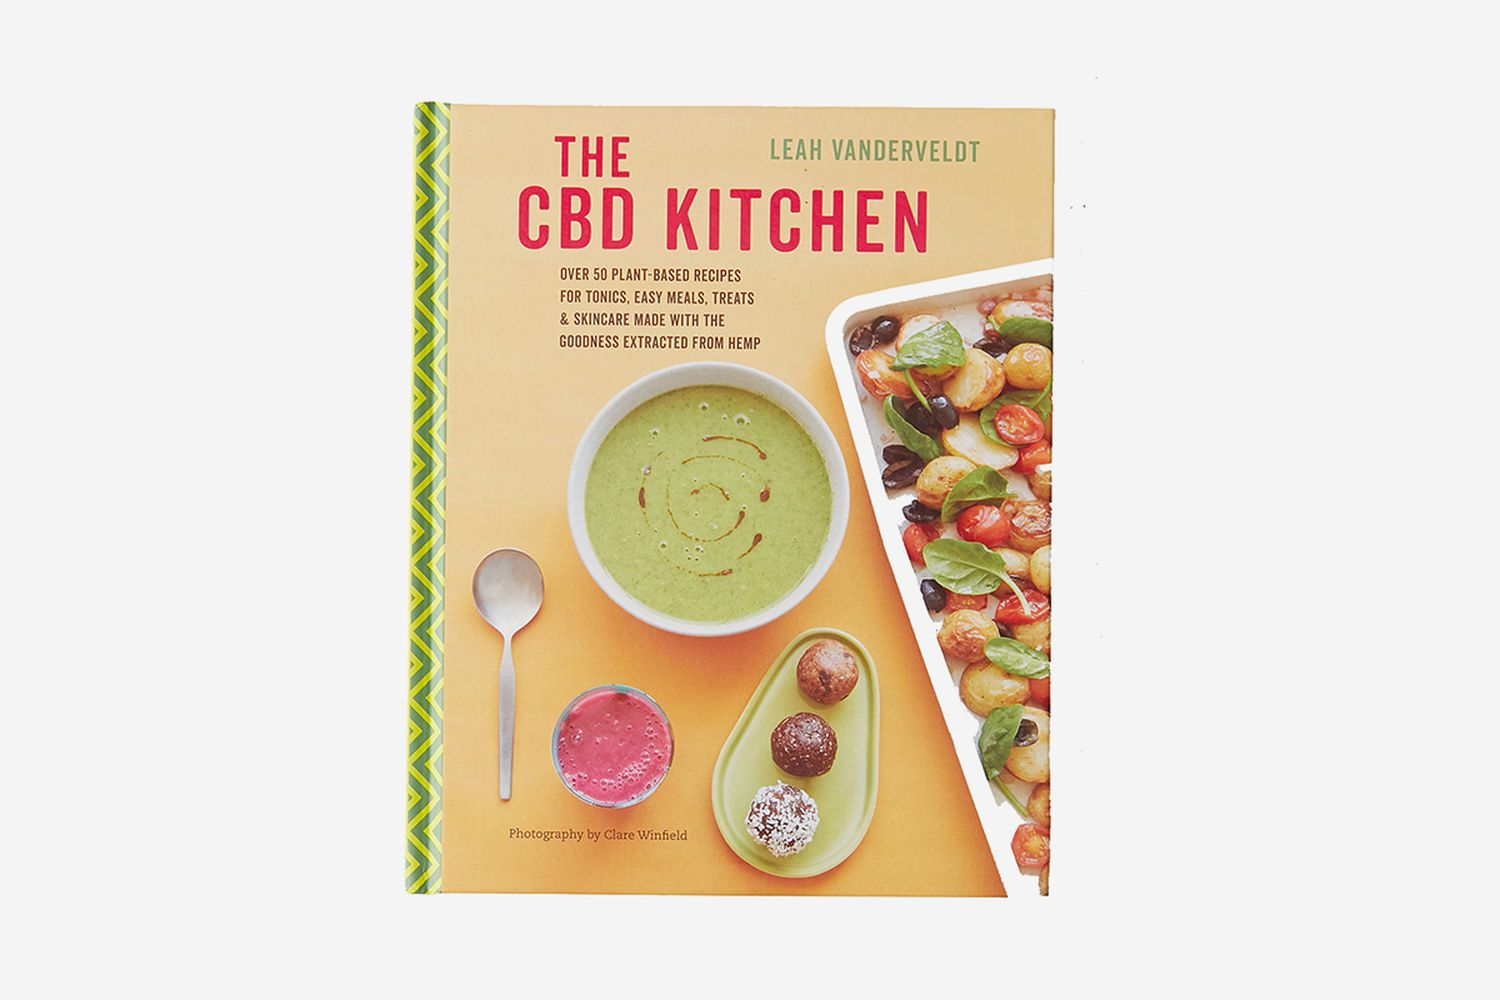 The CBD Kitchen: Over 50 Plant-Based Recipes for Tonics, Easy Meals, Treats & Skincare